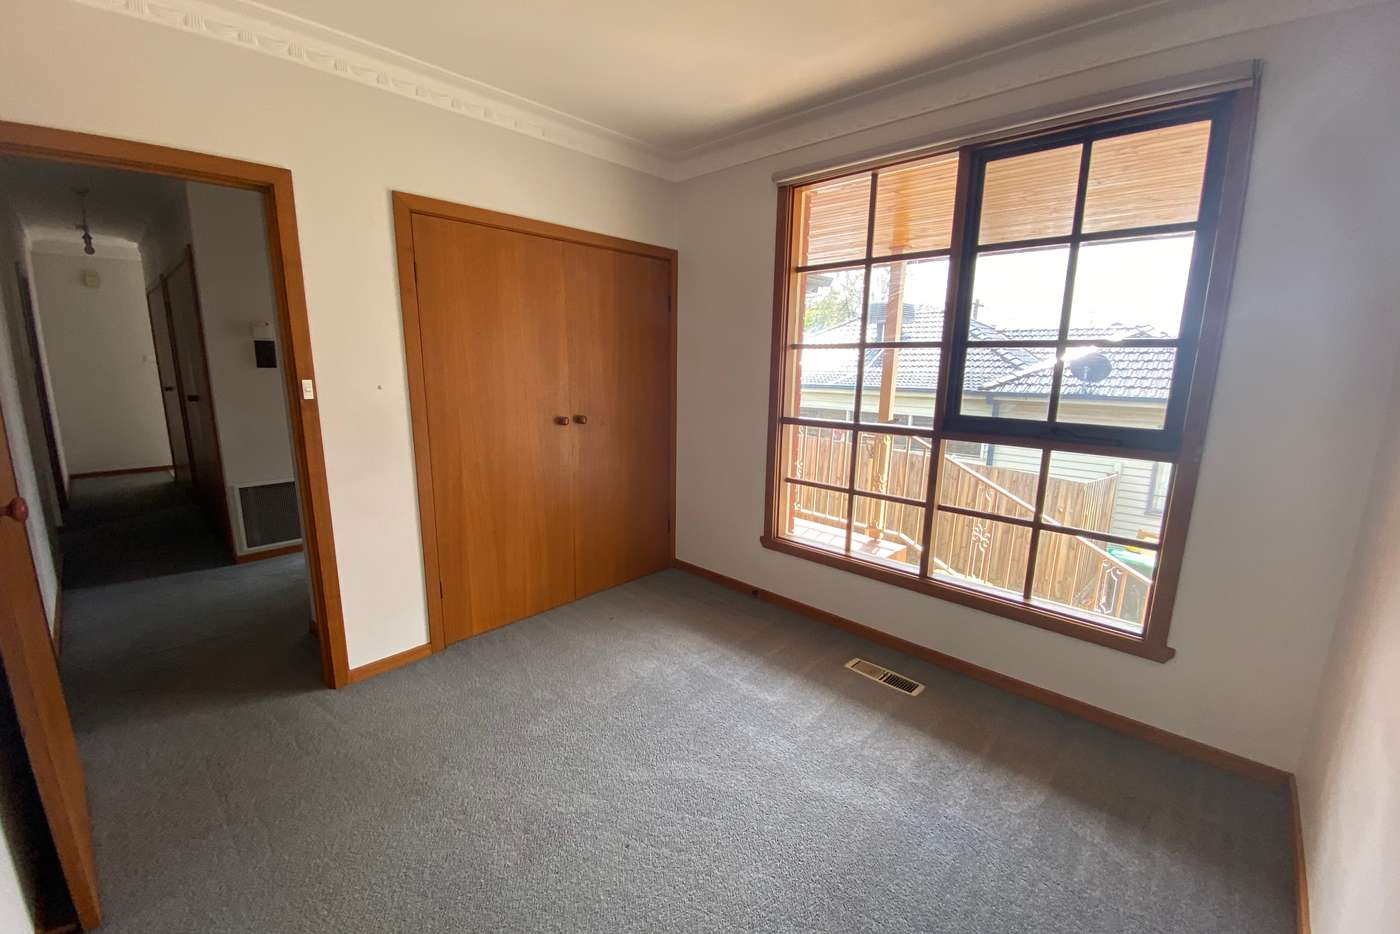 Seventh view of Homely unit listing, 9A Loeman Street, Strathmore VIC 3041